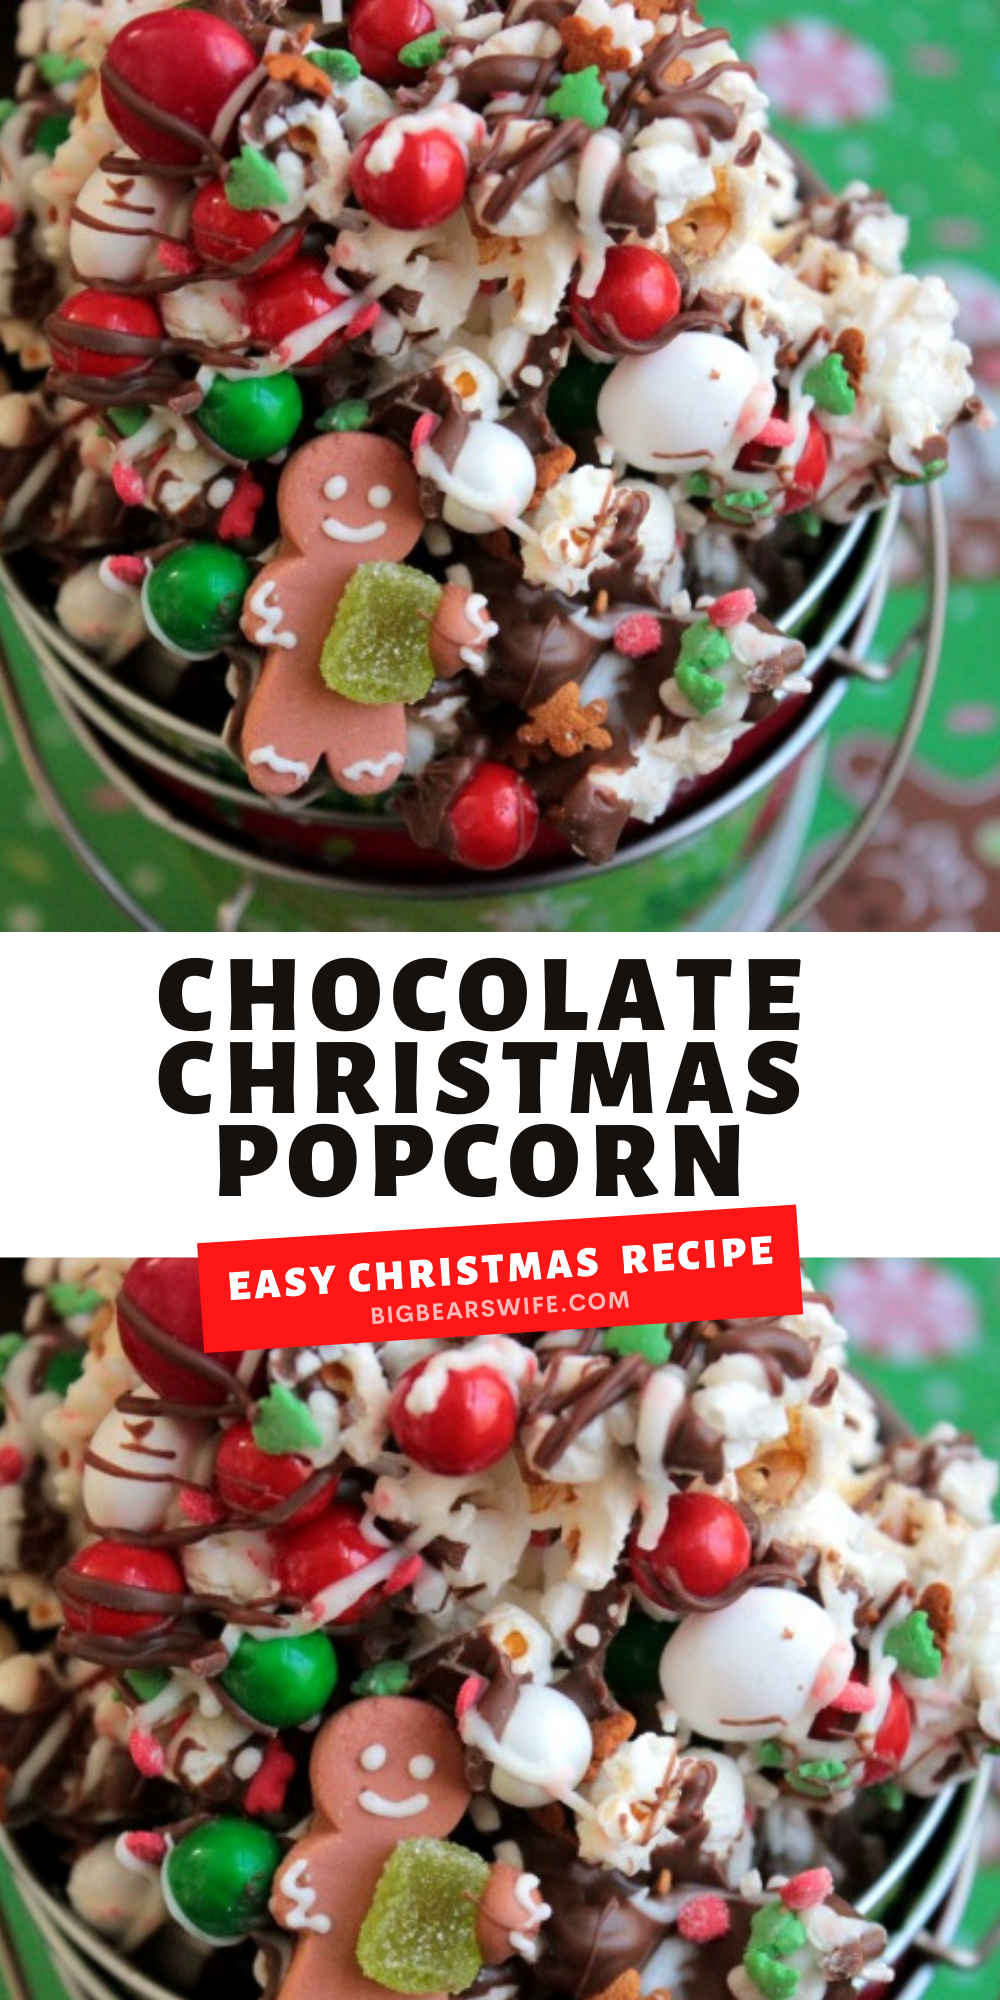 Drizzled with chocolate and sprinkled with chocolate candies and Christmas sprinkles, this Chocolate Christmas popcorn is the perfect festive treat to make at home with the kids or to package up for neighbor gifts! via @bigbearswife